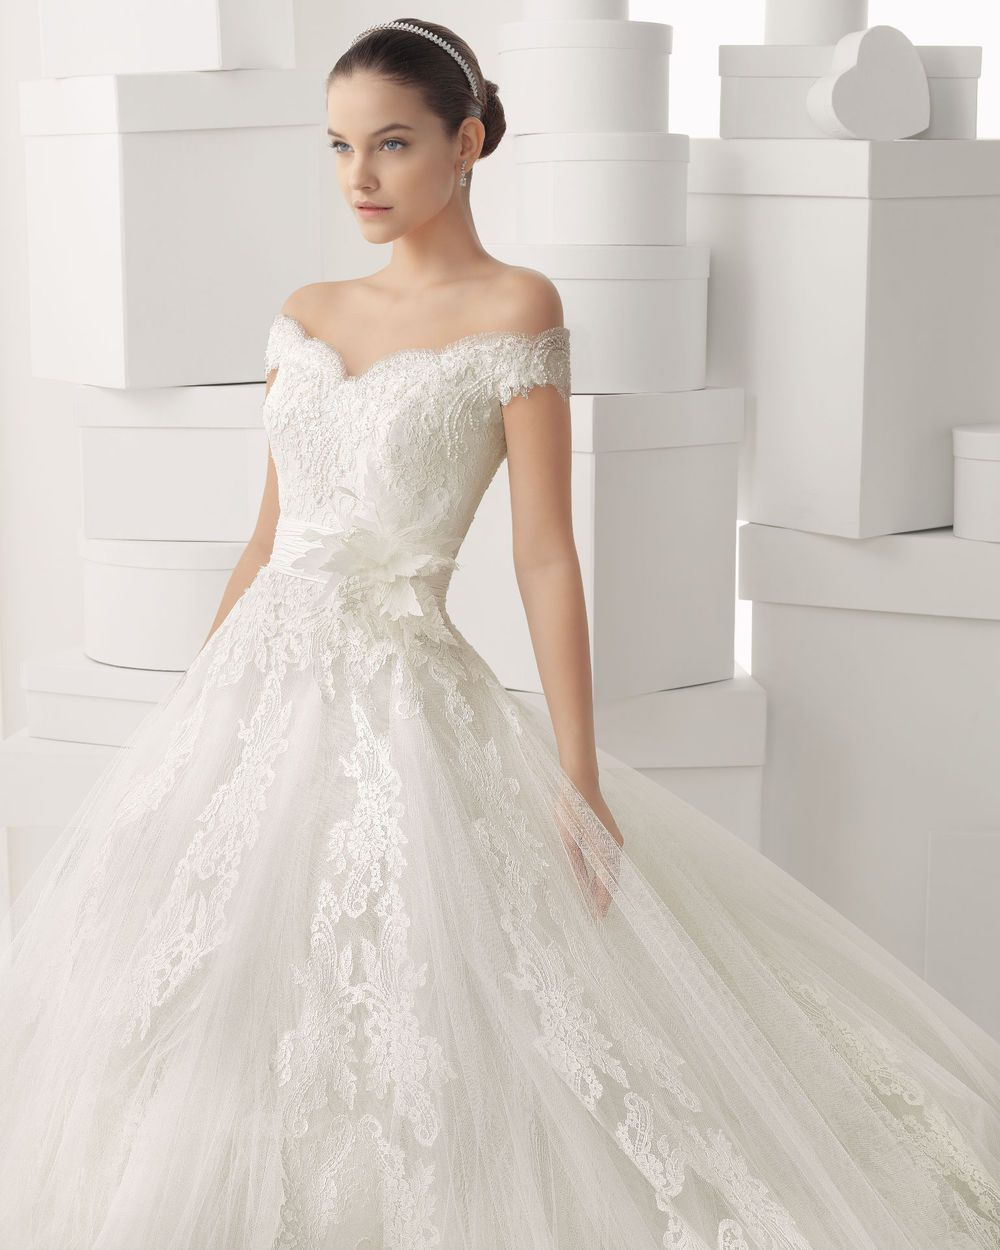 Buy 2014 glamorous off the shoulder ball gown lace wedding for Ordering wedding dresses online